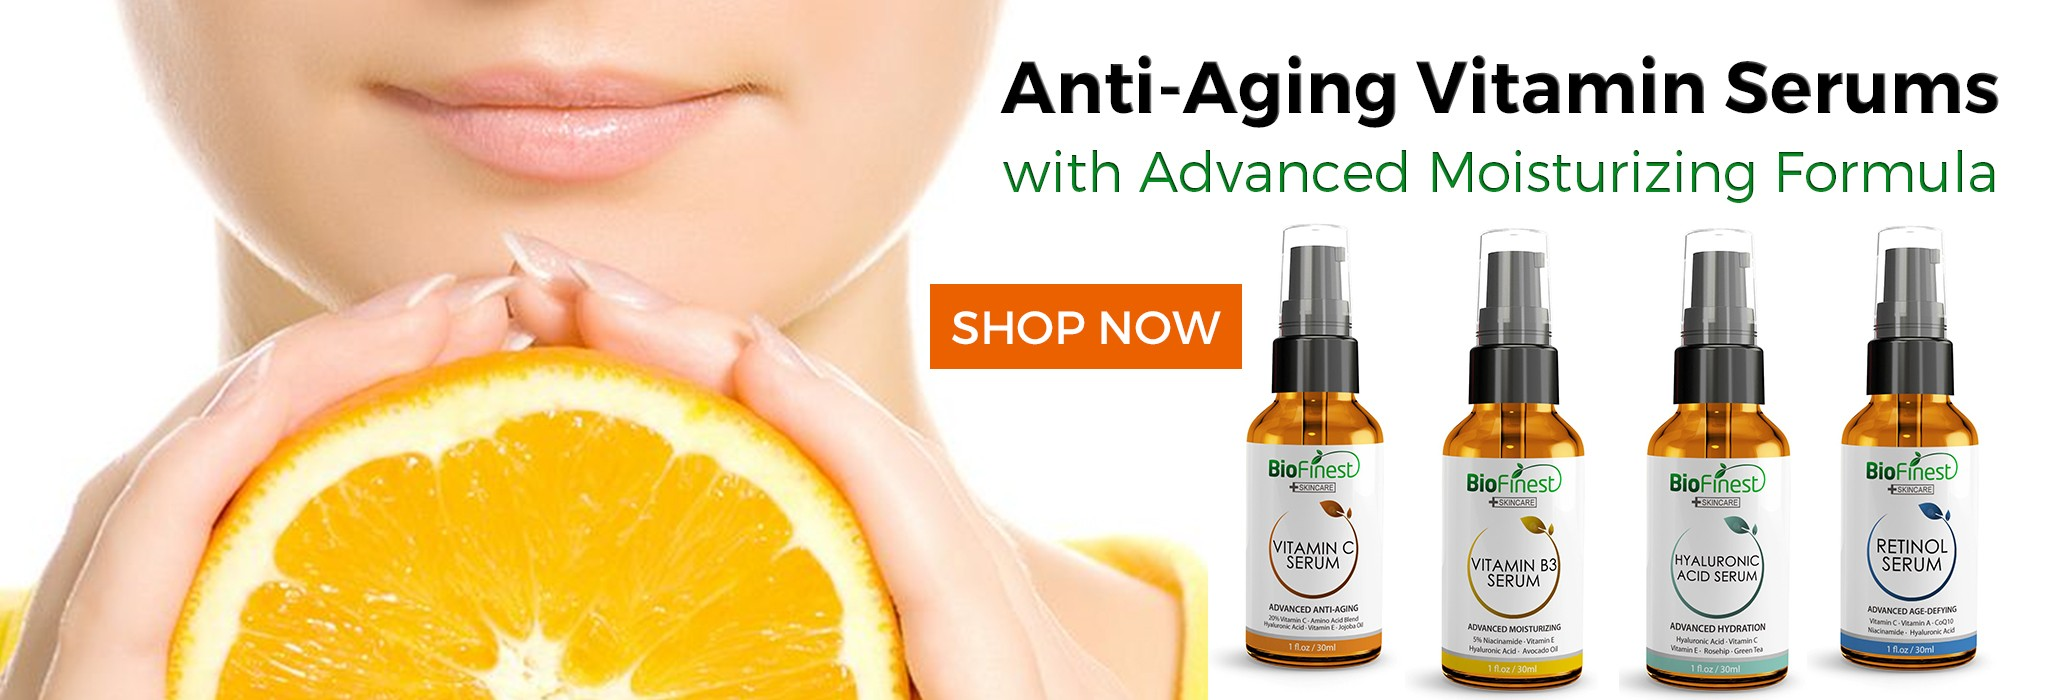 Biofinest Anti Ageing Vitamin Serums - with Vitamin C, Retinol, Hyaluronic Acid and Essential Oil Essense